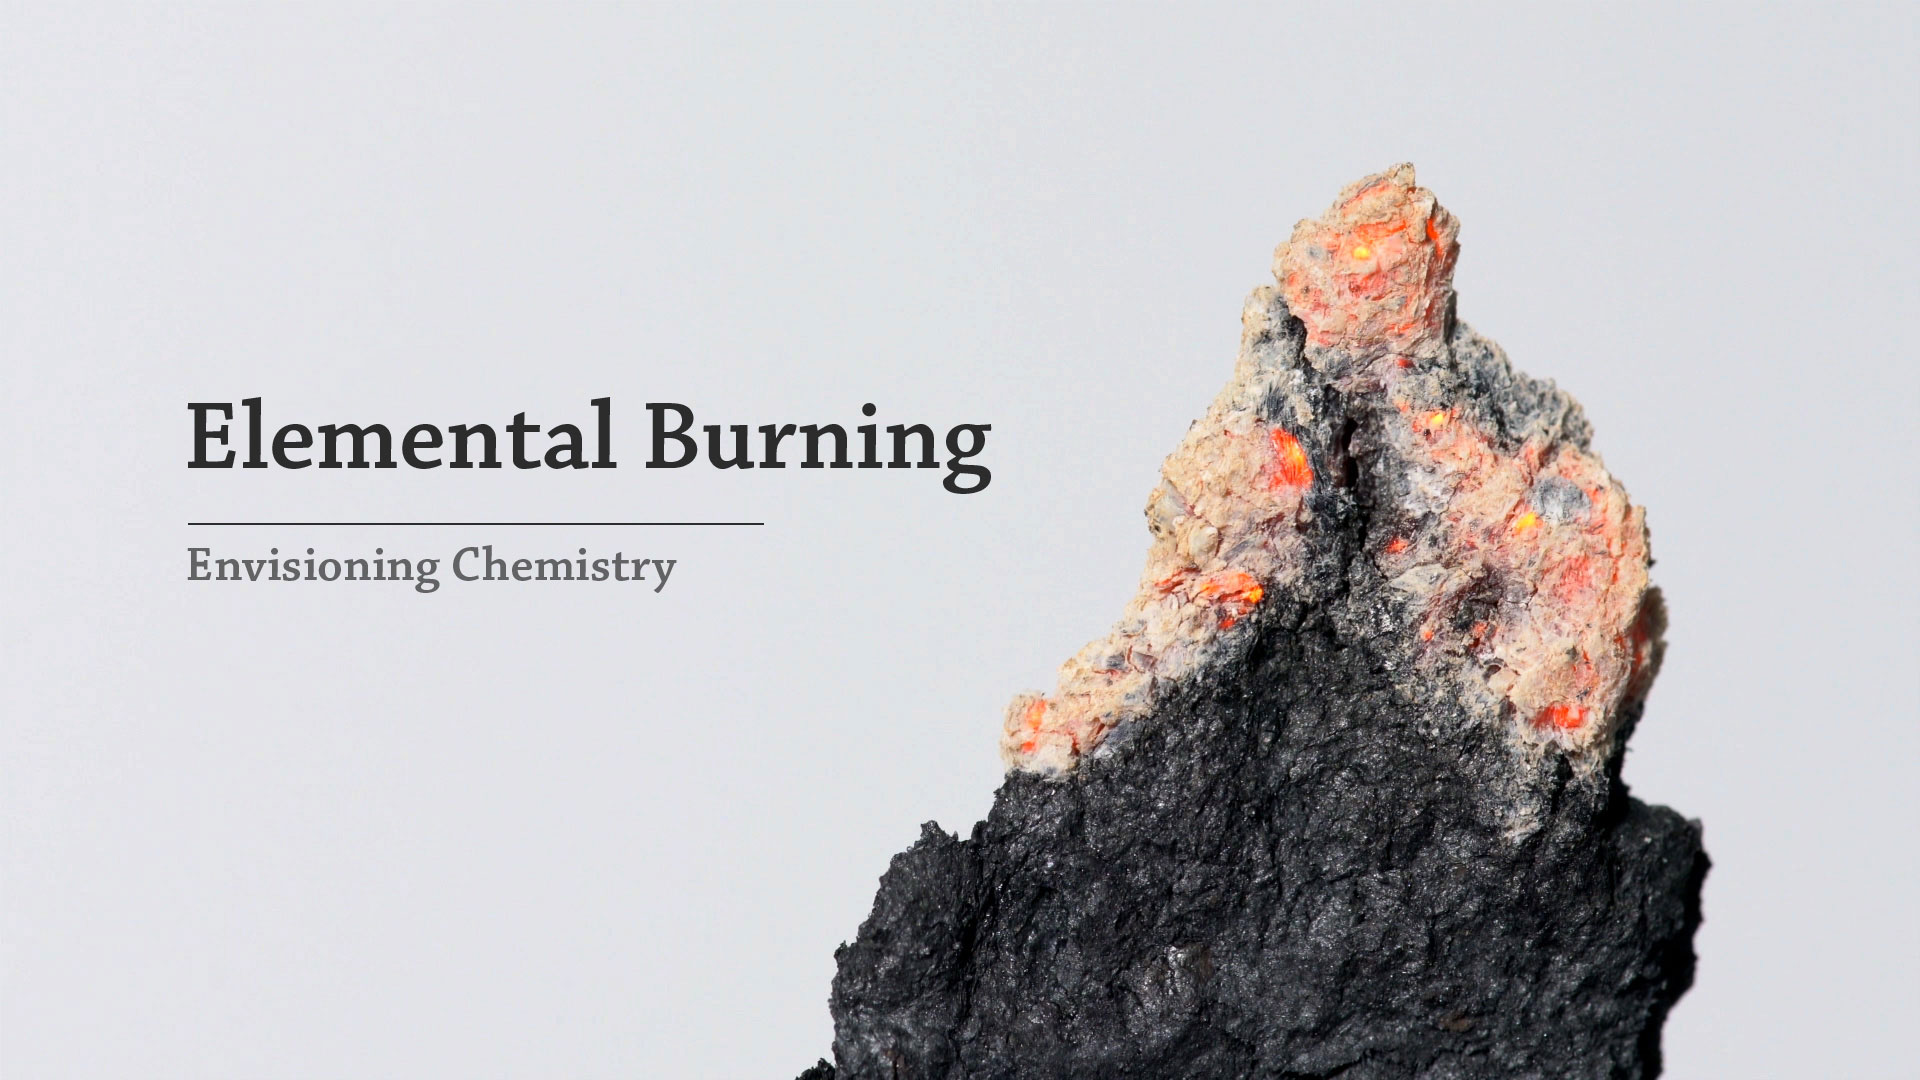 Elemental Burning